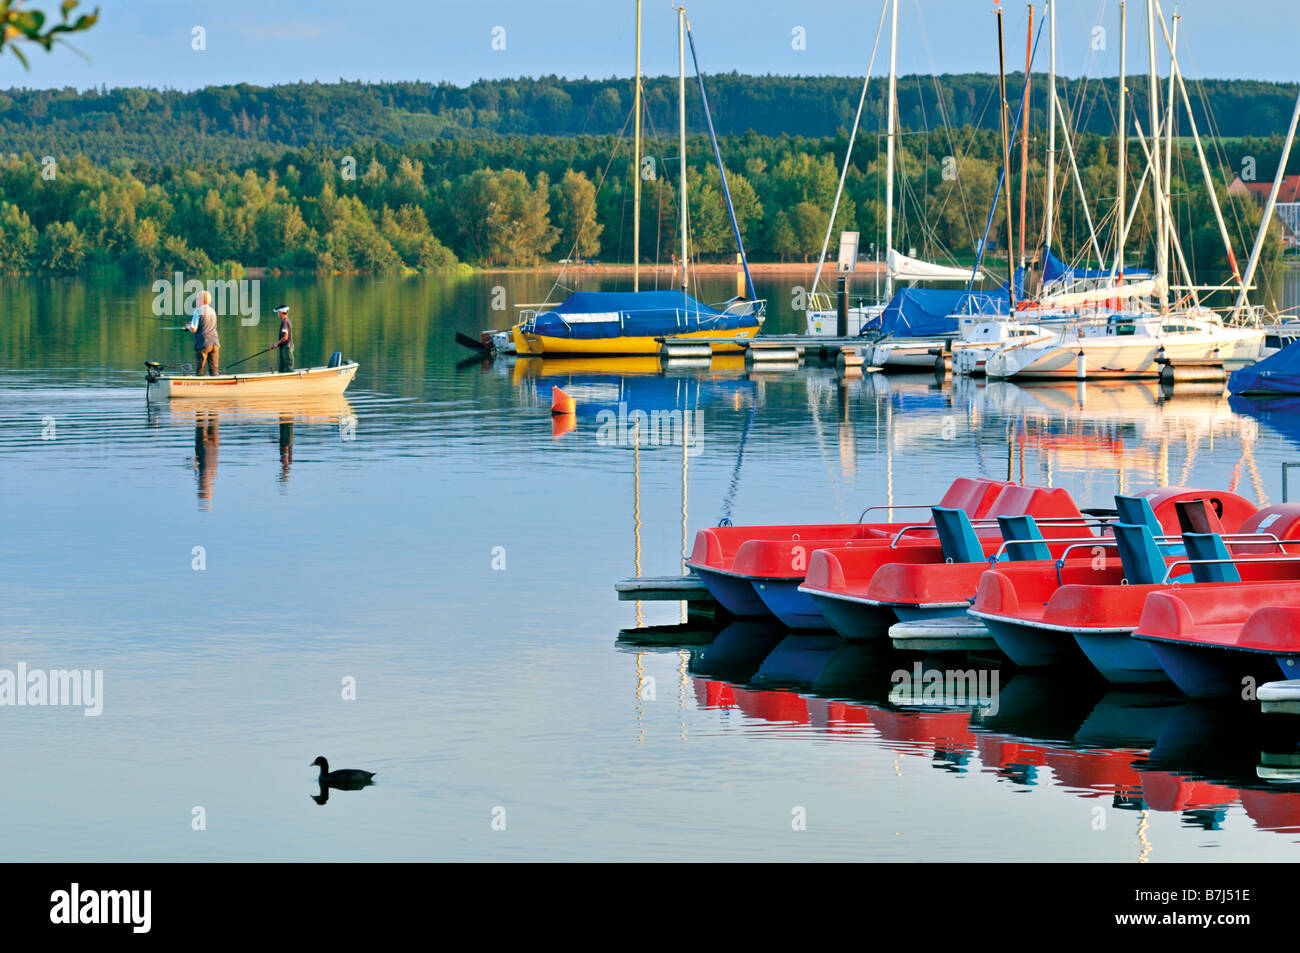 Fishing at the Small Brombach Lake in the bavarian holiday region Fränkisches Seenland in Germany Stock Photo